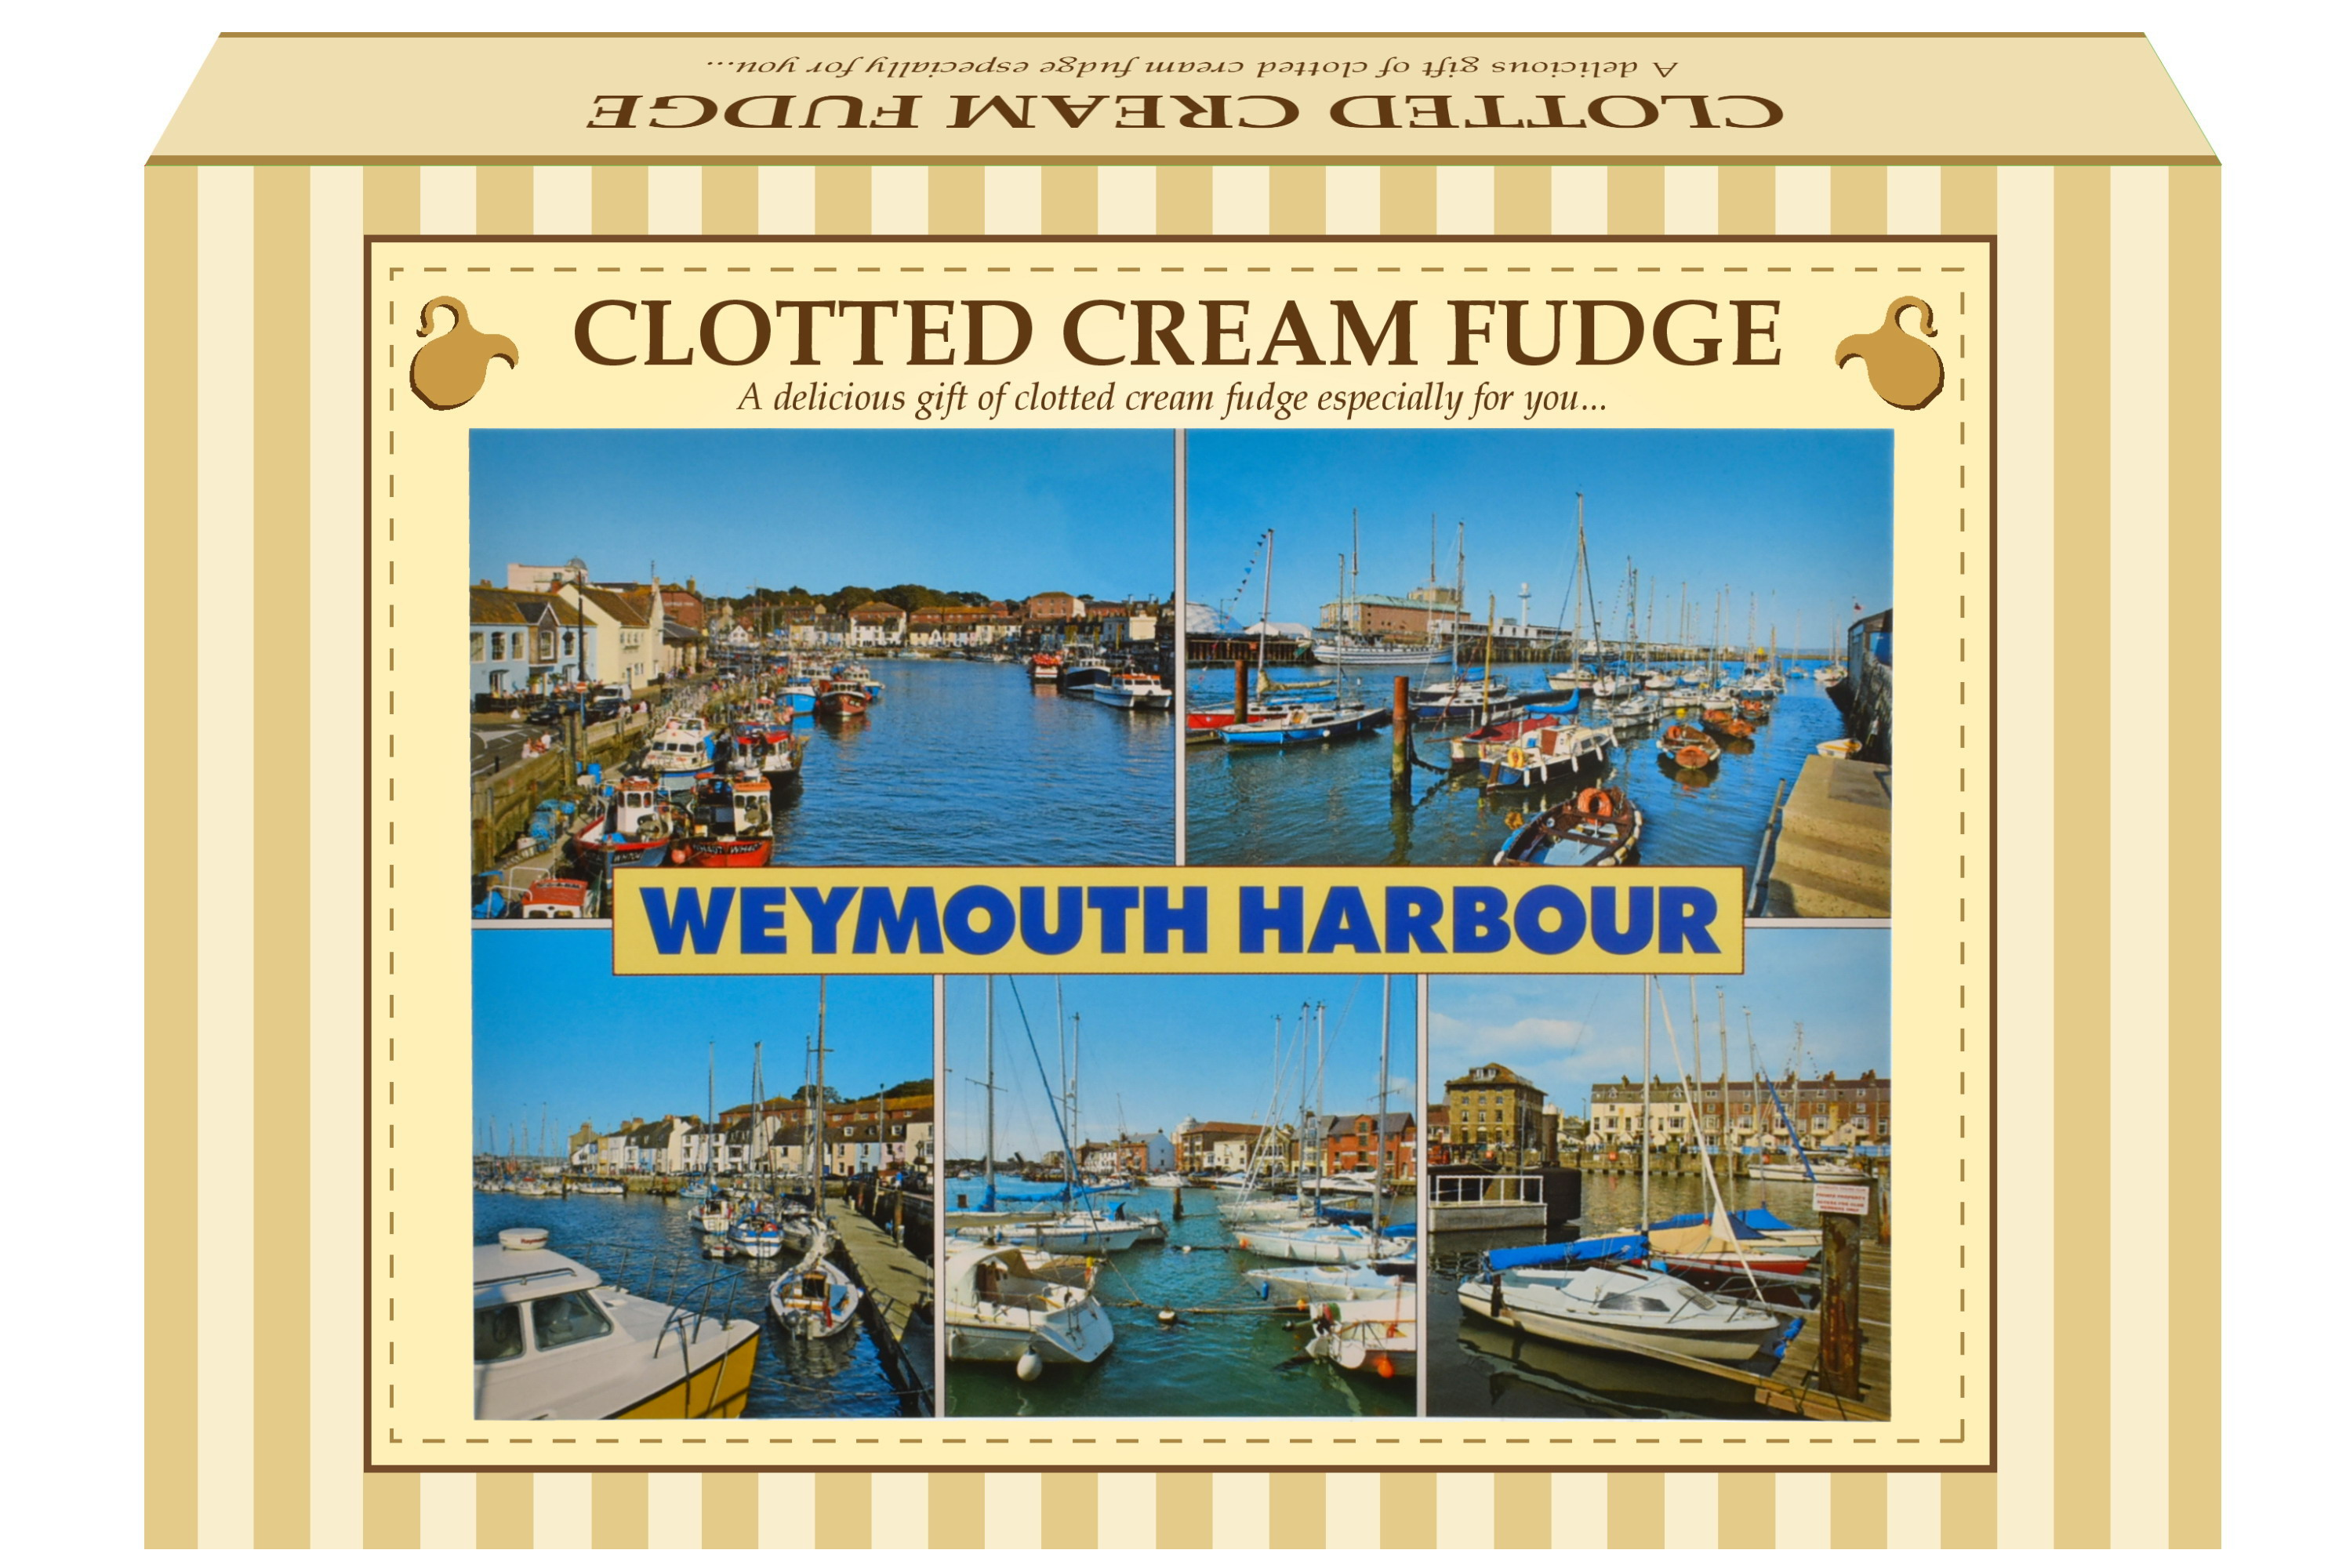 200g Clotted Cream Fudge Postcard Gift Box